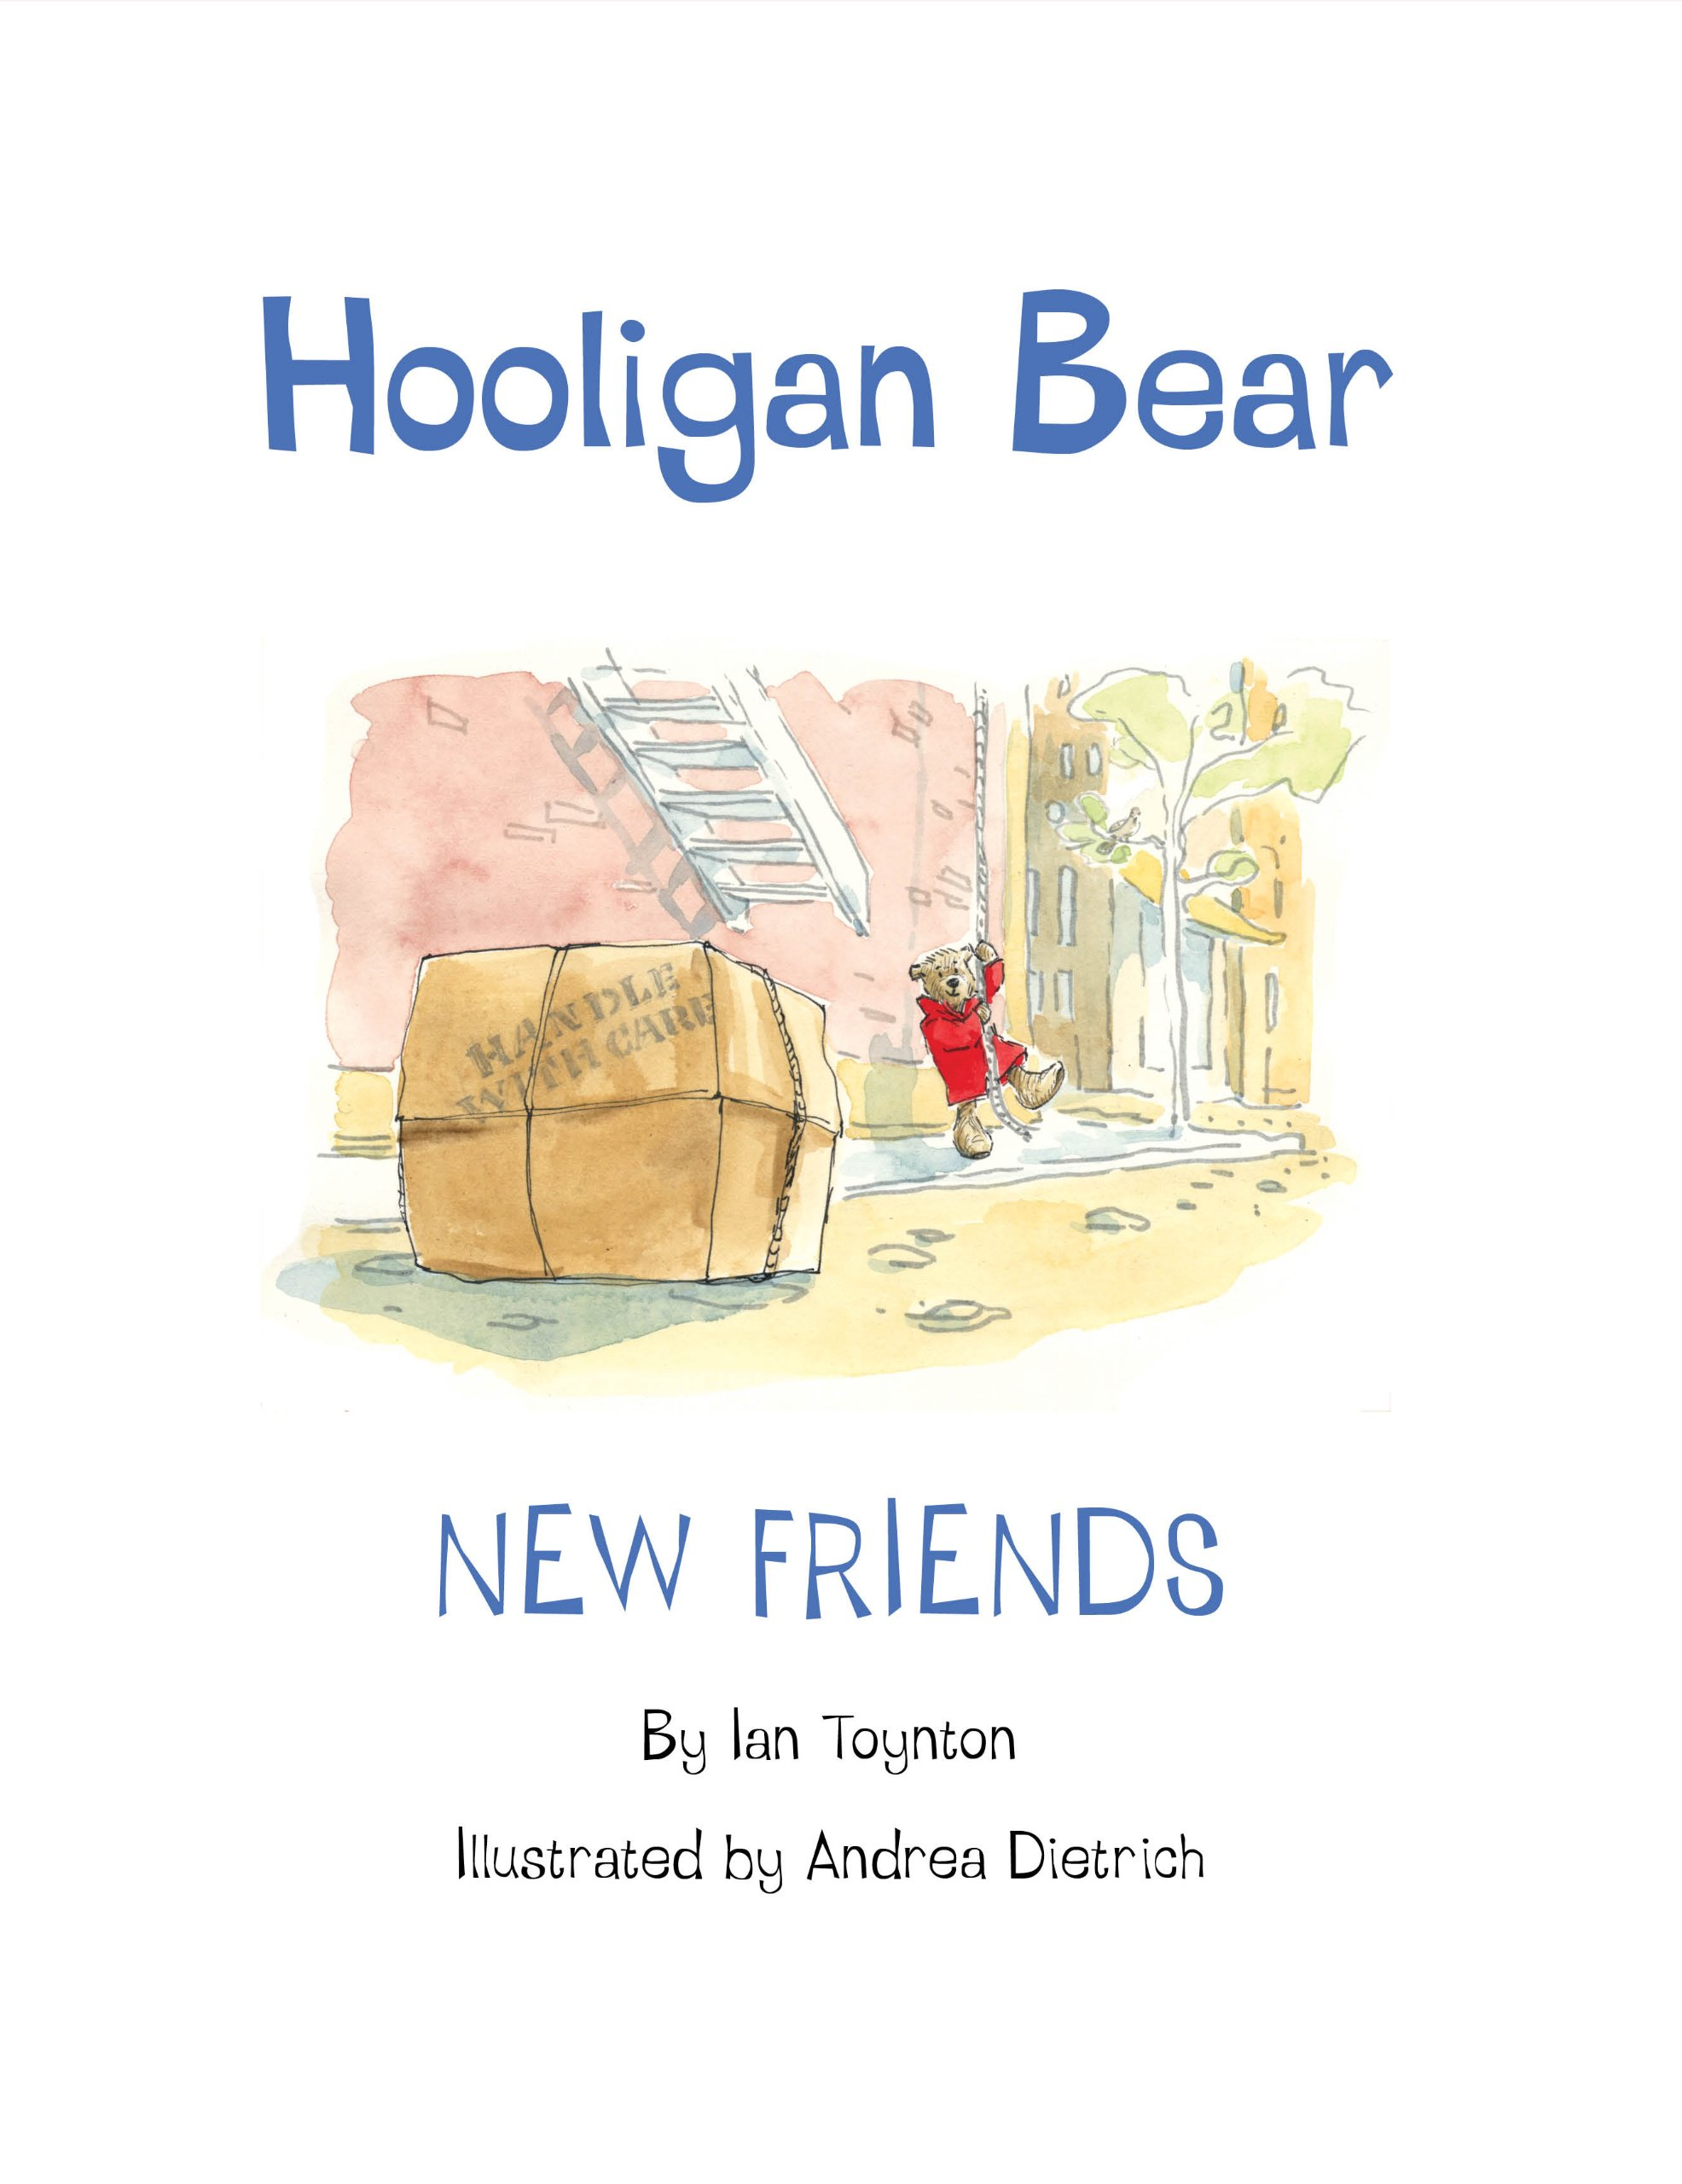 Hooligan Bear Friends Ian Toynton product image